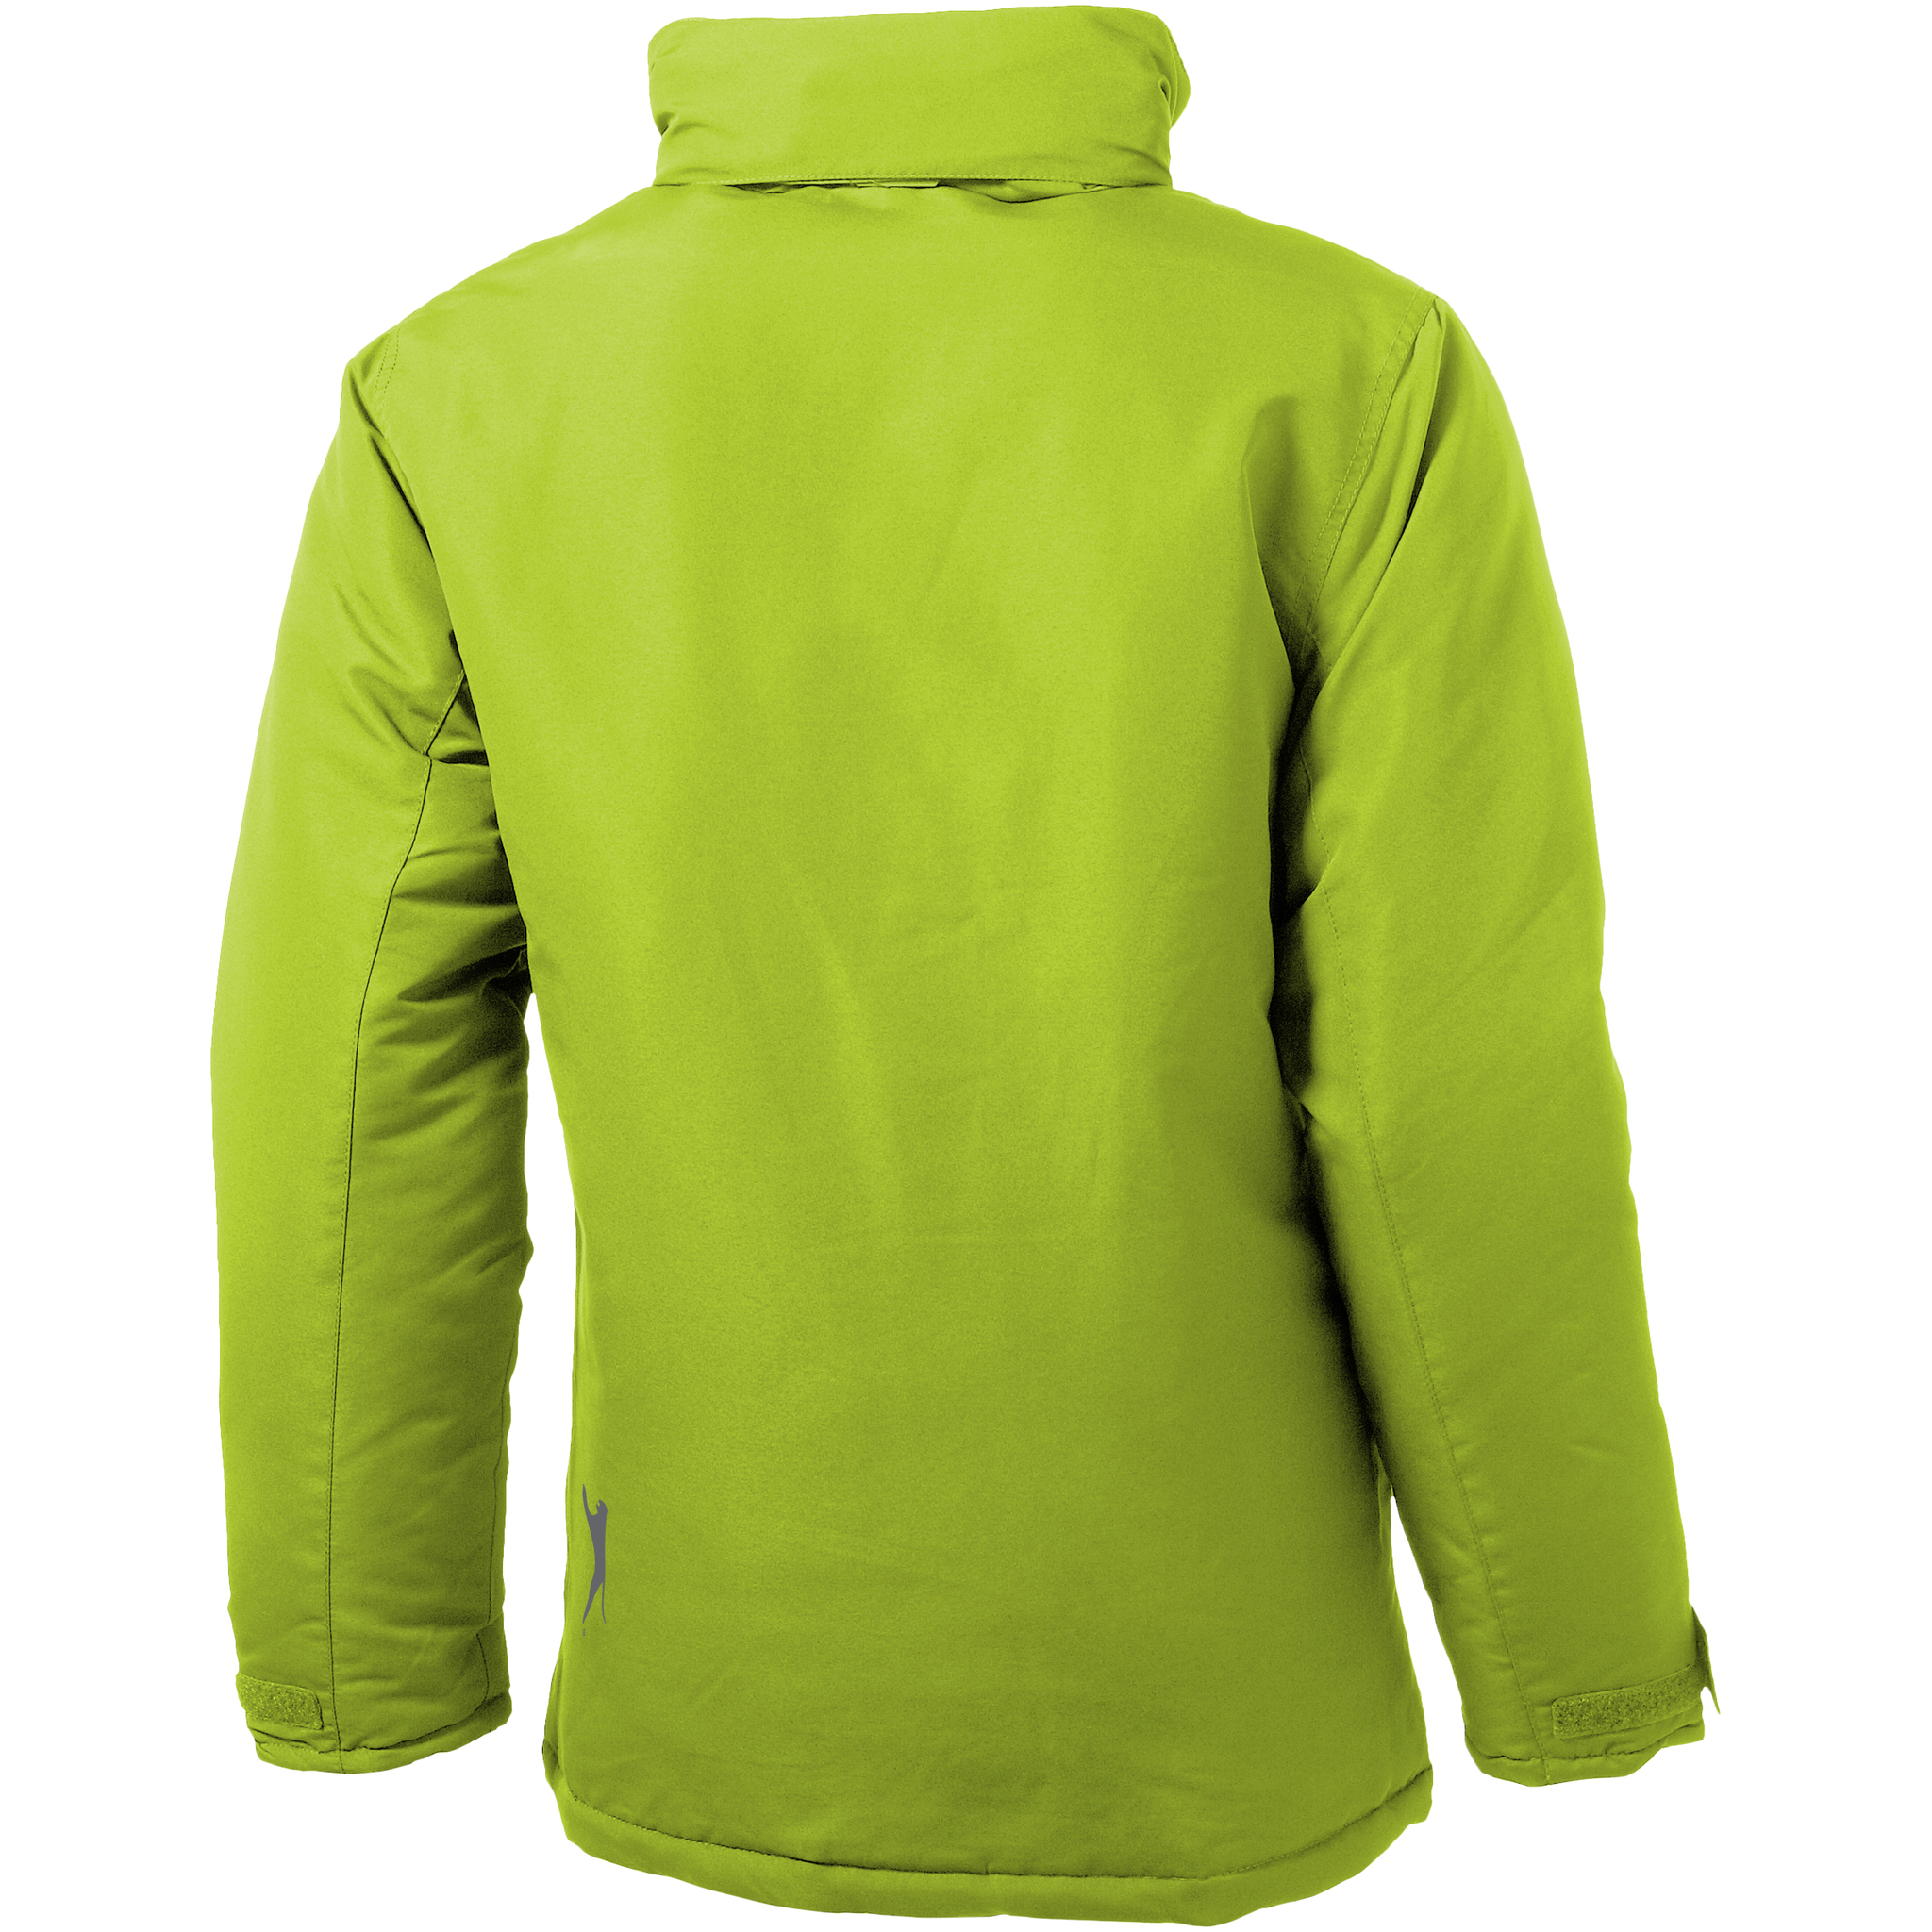 Slazenger-Mens-Under-Spin-Insulated-Jacket-PF1783